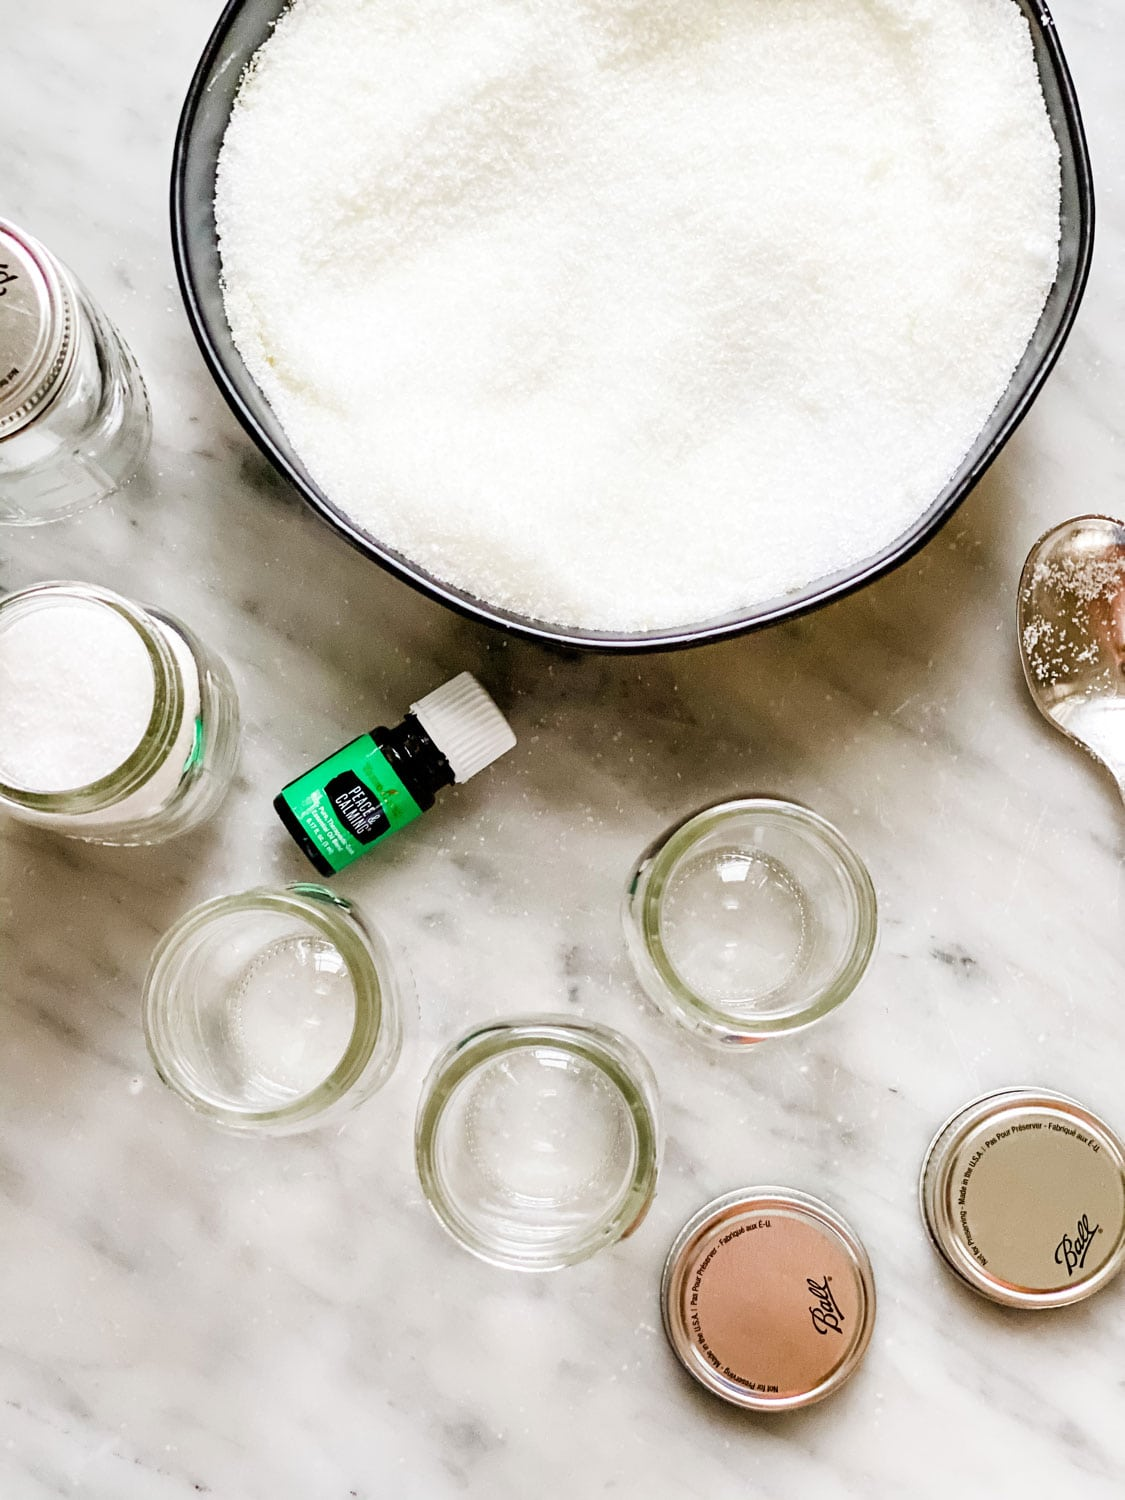 small glass jars, bowl with salt and bottle of essential oil